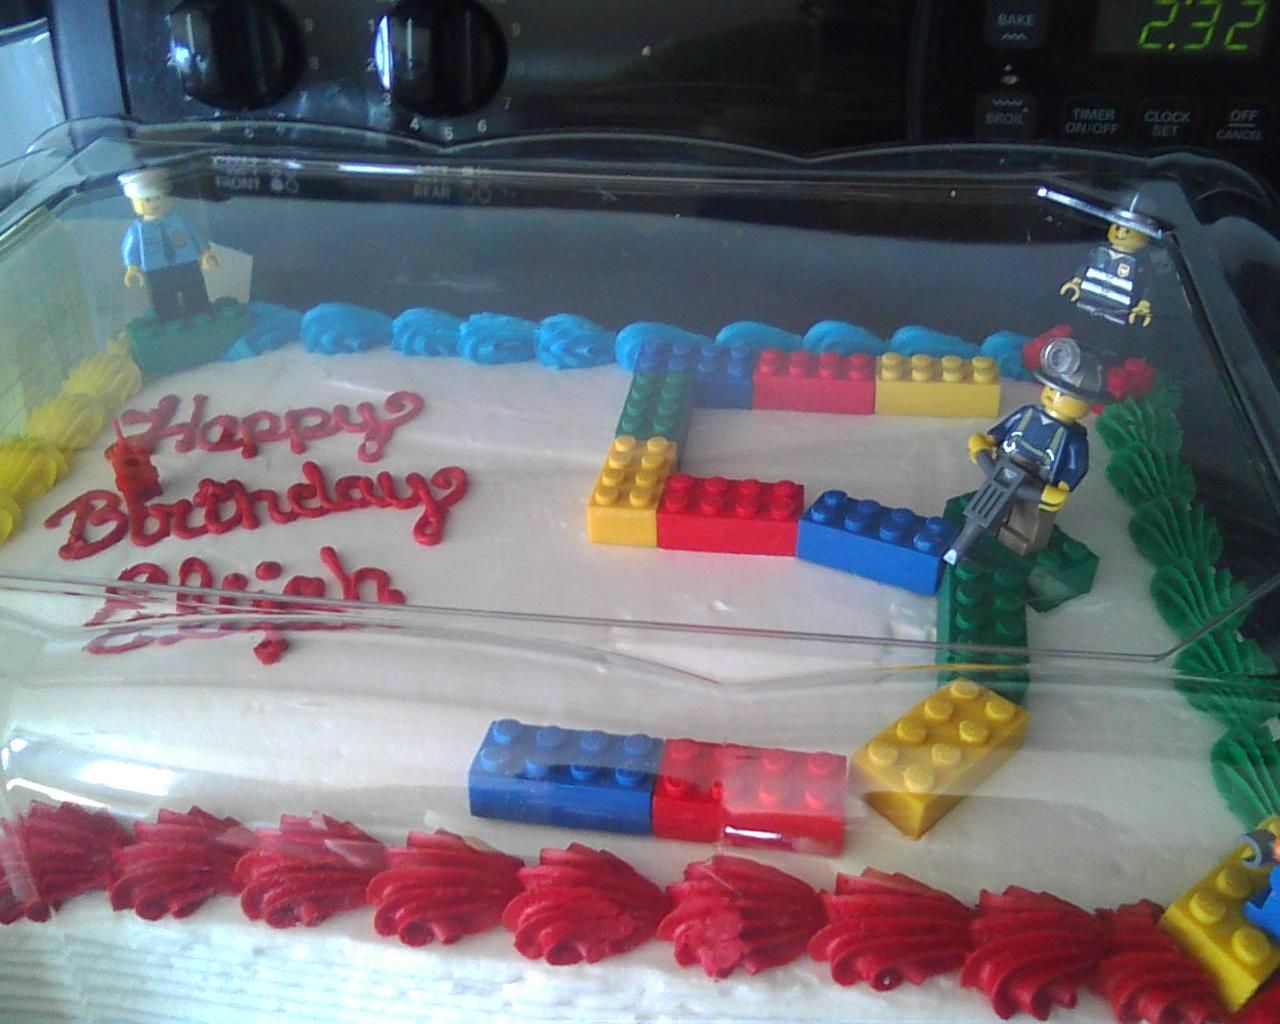 Eli S Lego City Birthday Cake Those Are Erasers Btw 2 99 At Meijer